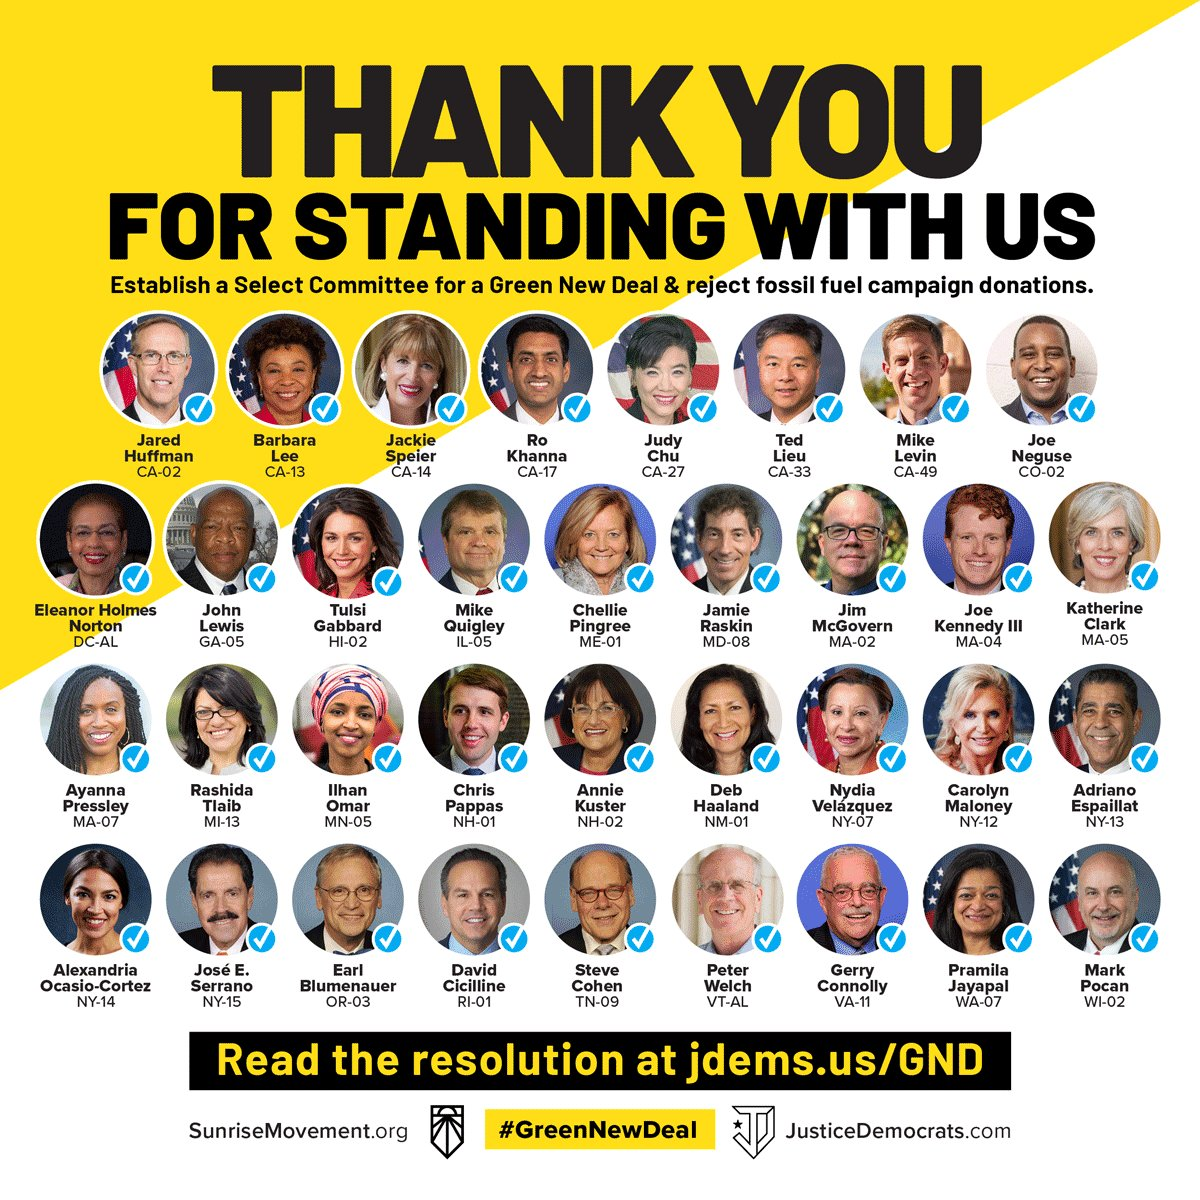 THIRTY FIVE Representatives now support the Select Committee on a #GreenNewDeal. 36 hours ago, that number was 22. Our movement has momentum, but we also have only a few more days to #SealTheDeal. Visit your local Rep before Congress closes on Friday: docs.google.com/forms/d/e/1FAI…